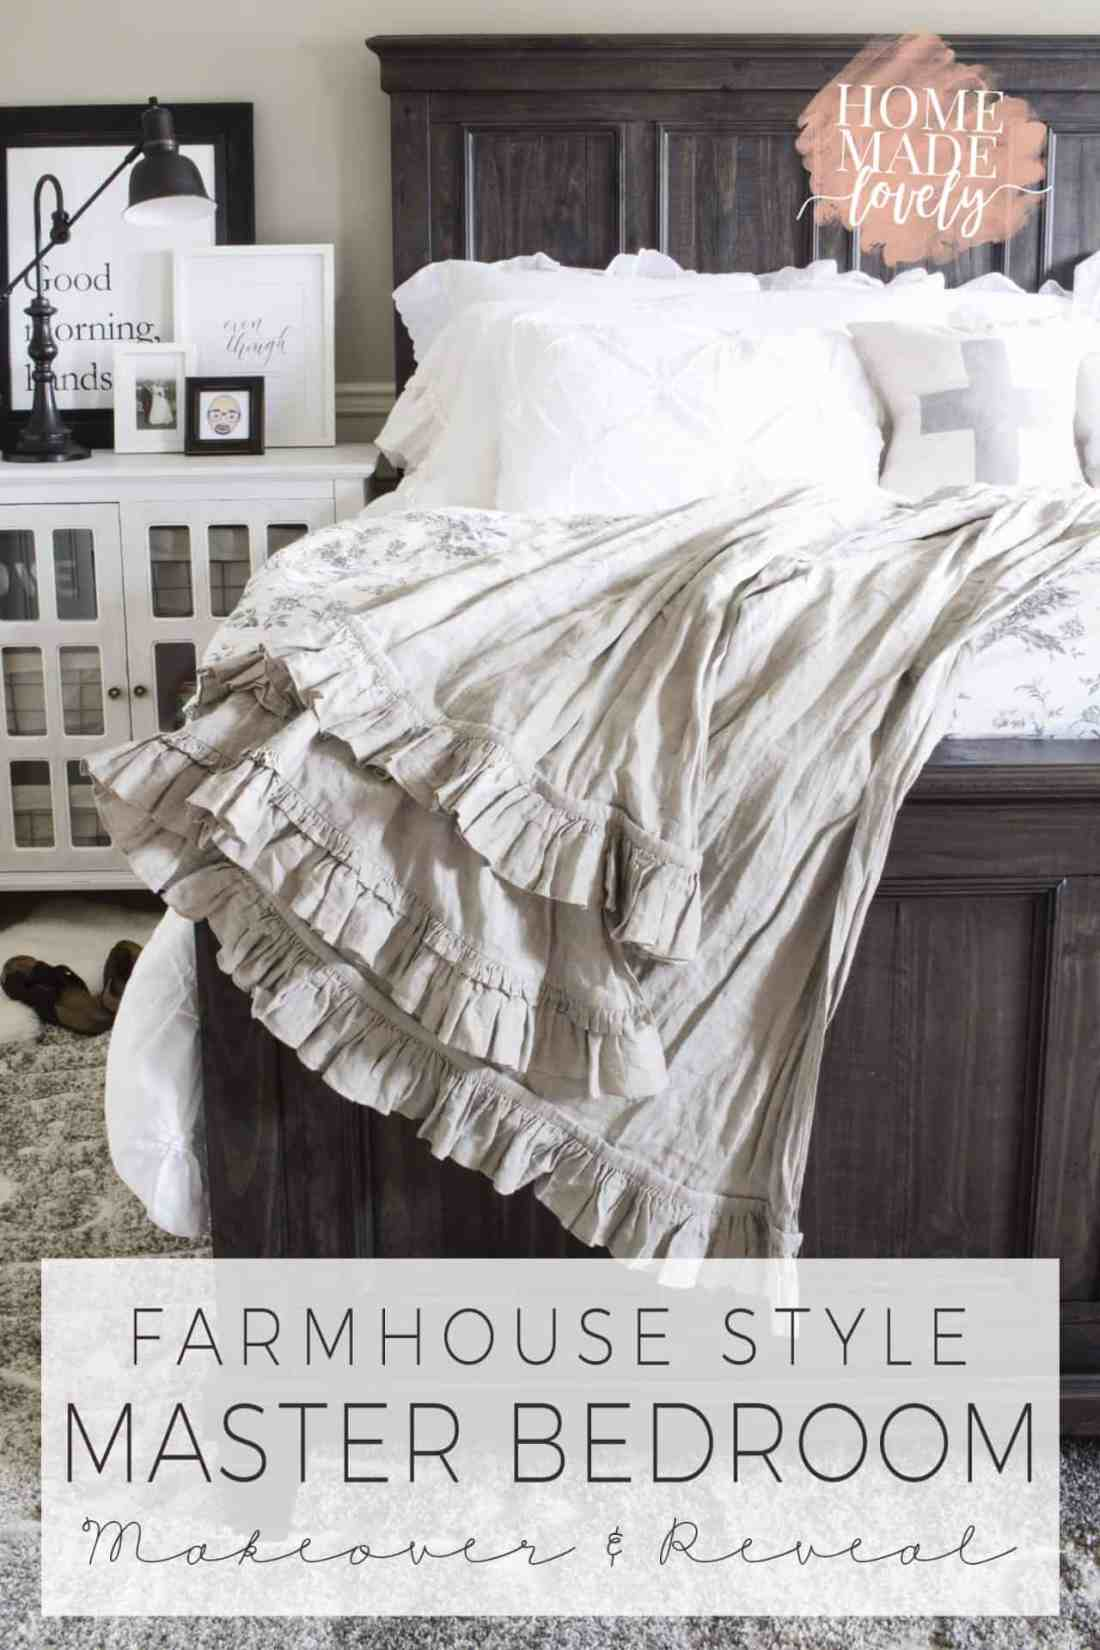 Our master bedroom needed a lot of TLC to make it into a lovely retreat. After a few weeks work, we're happy to share our farmhouse style master bedroom makeover reveal with you!